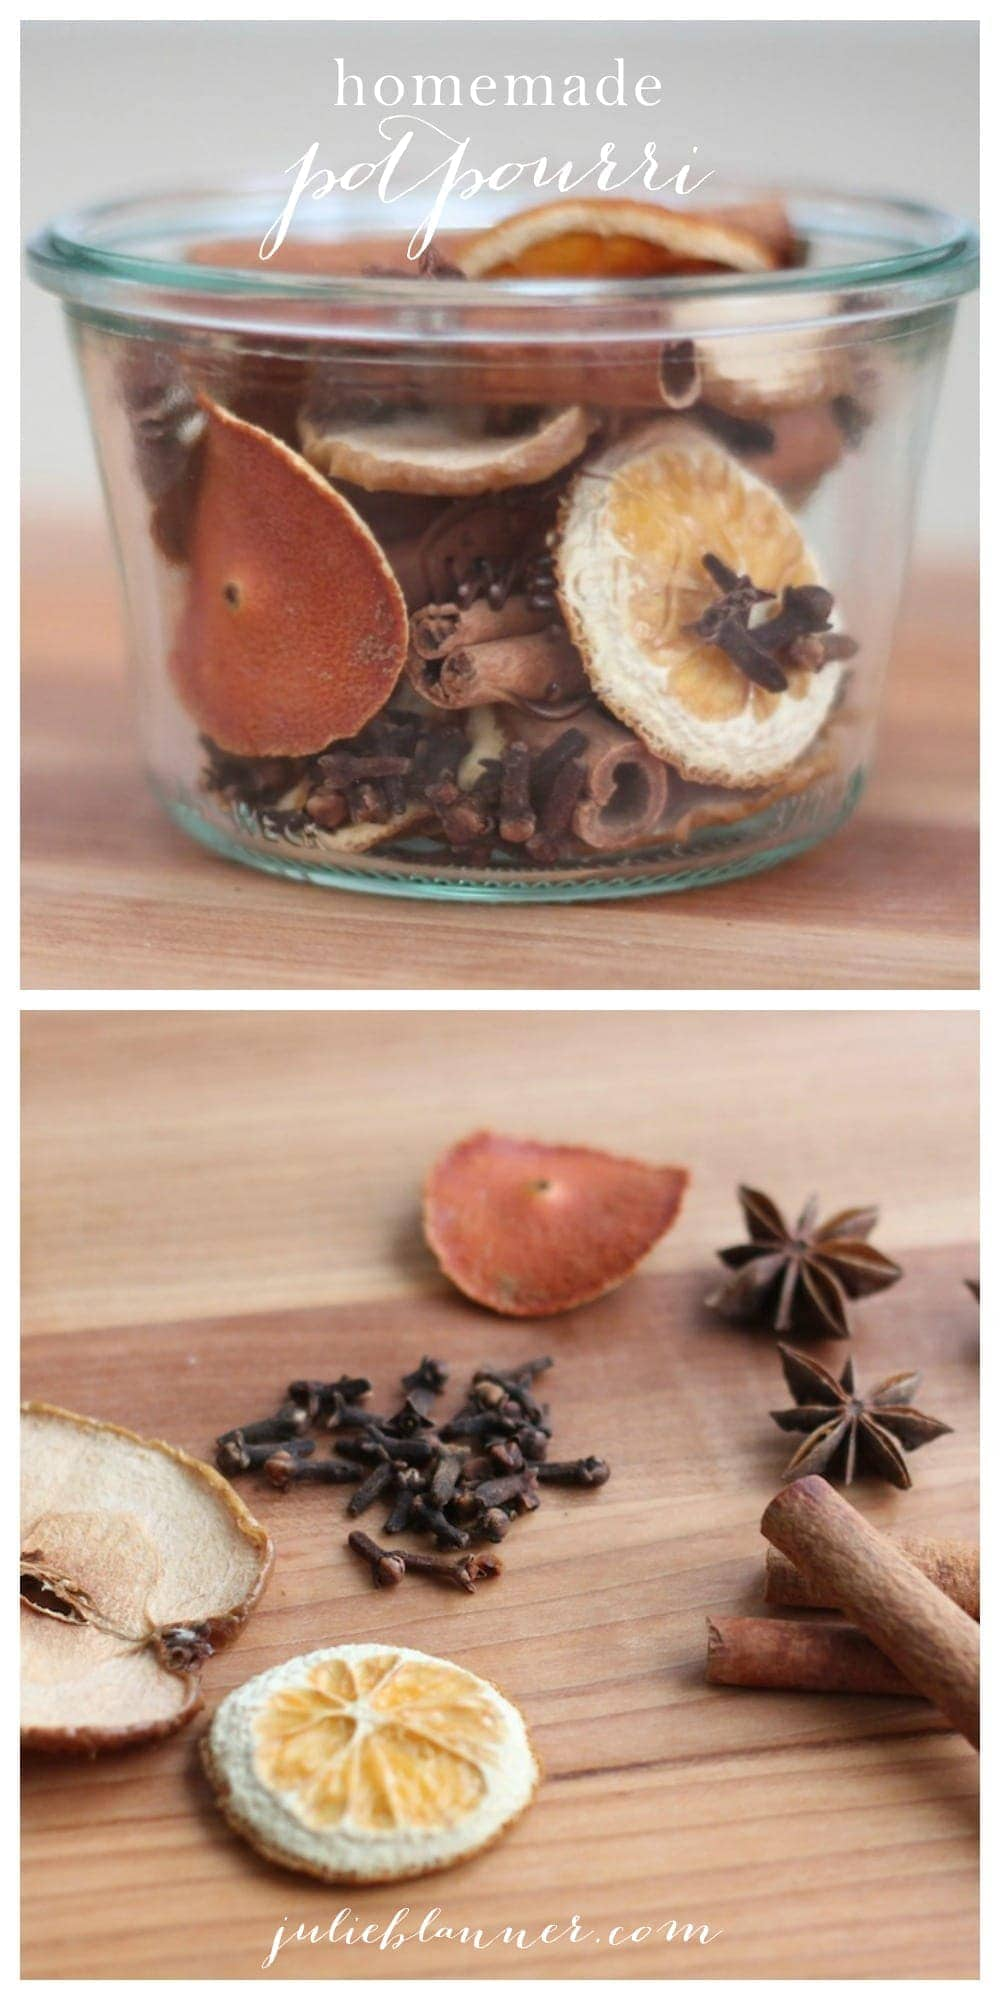 Homemade potpourri recipe from lifestyle blogger julie blanner - Homemade scent recipes ...